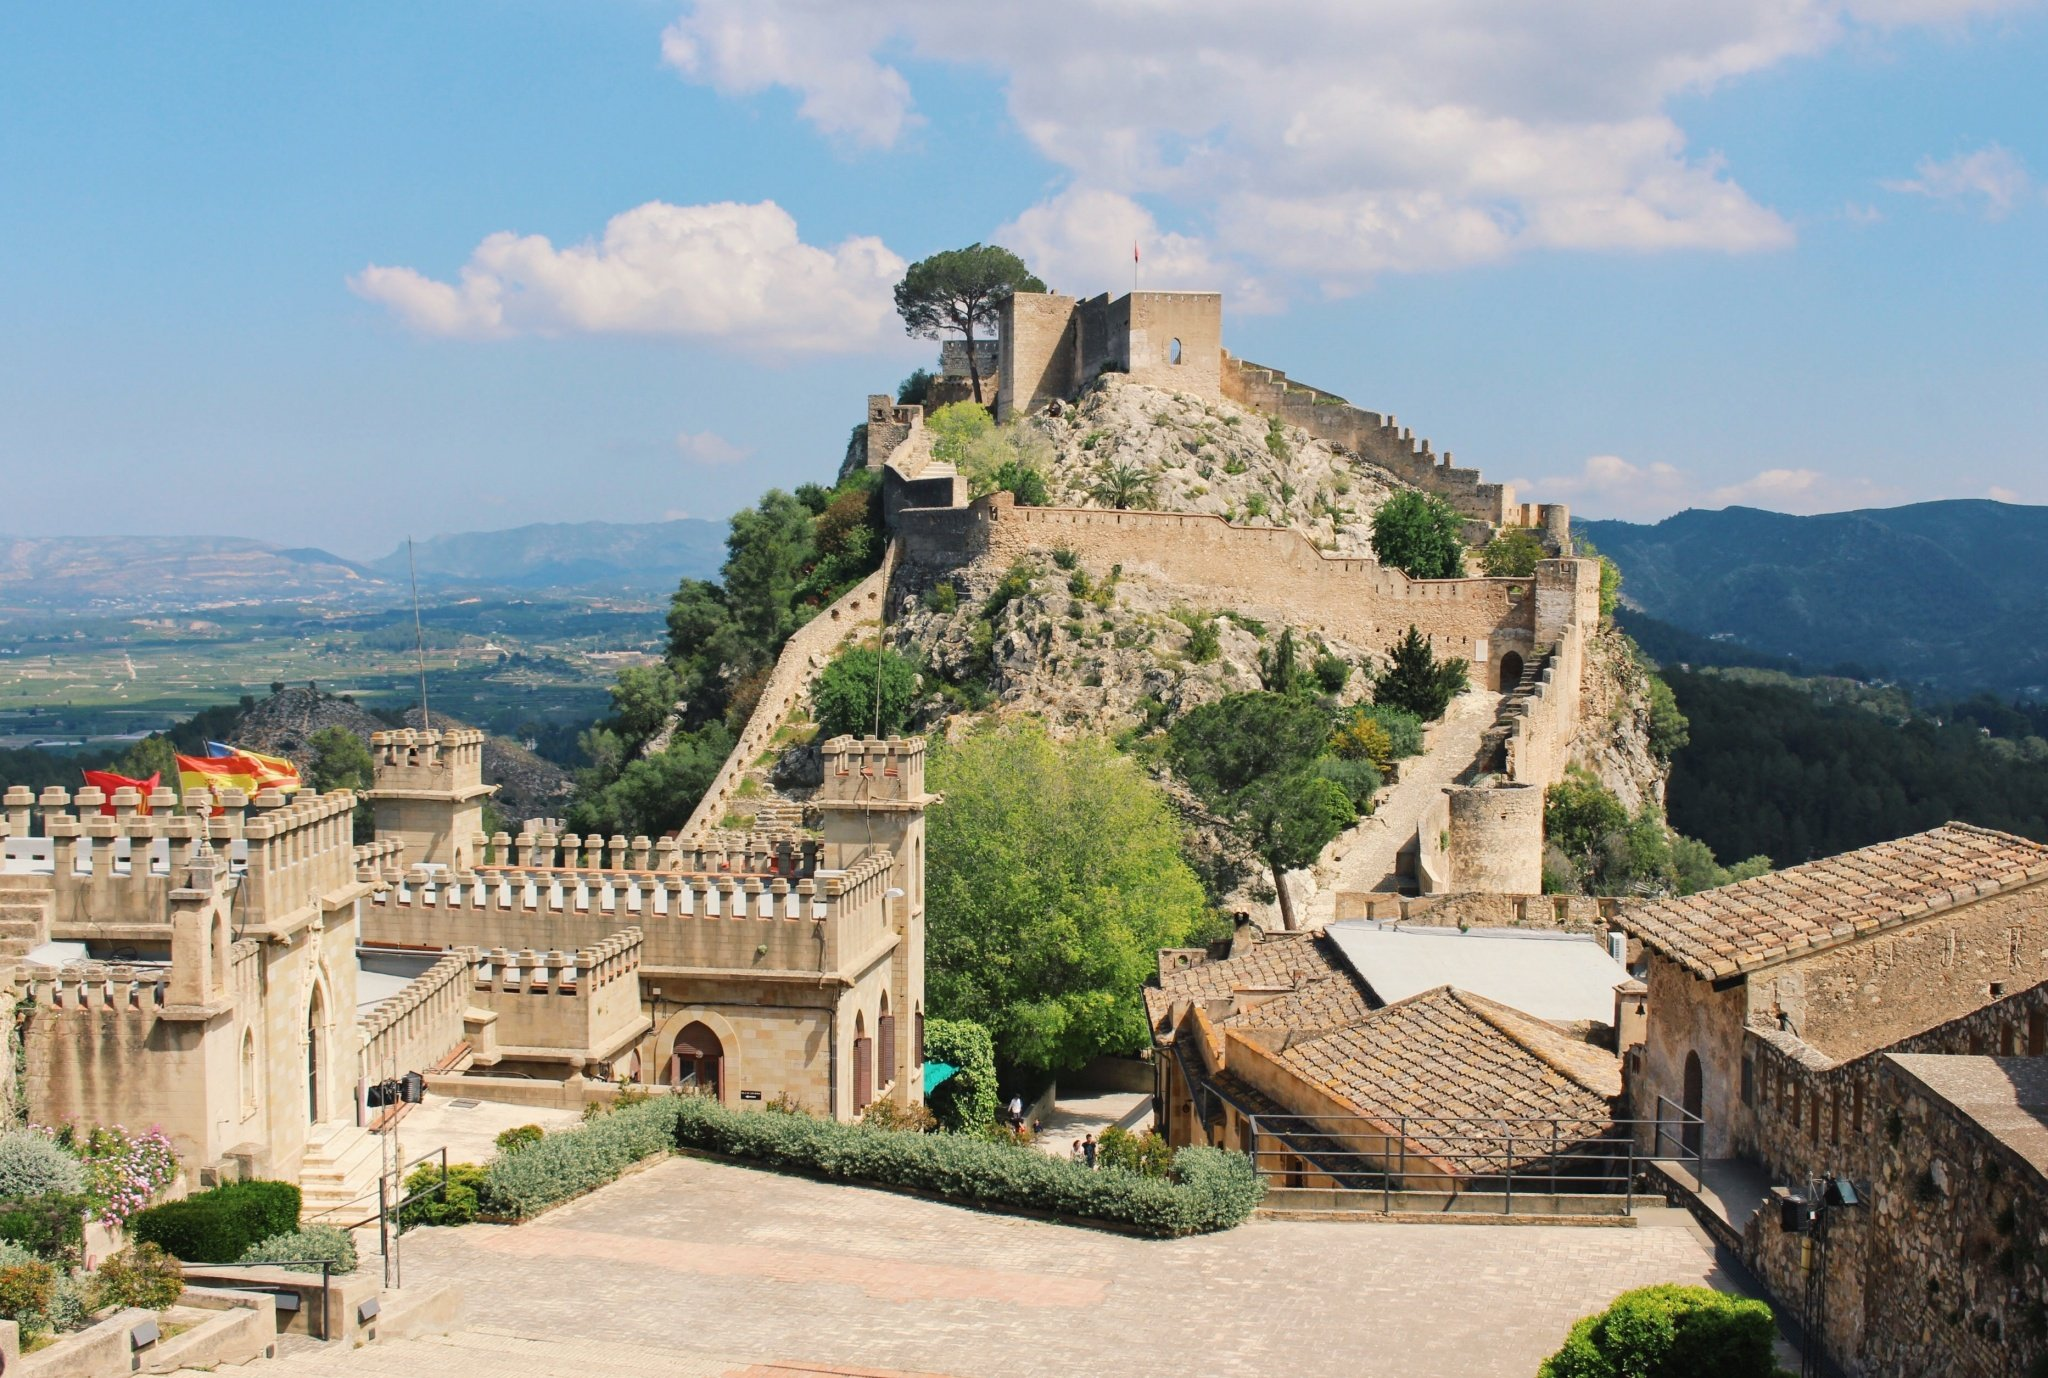 The Castle of Jativa near Valencia, Spain